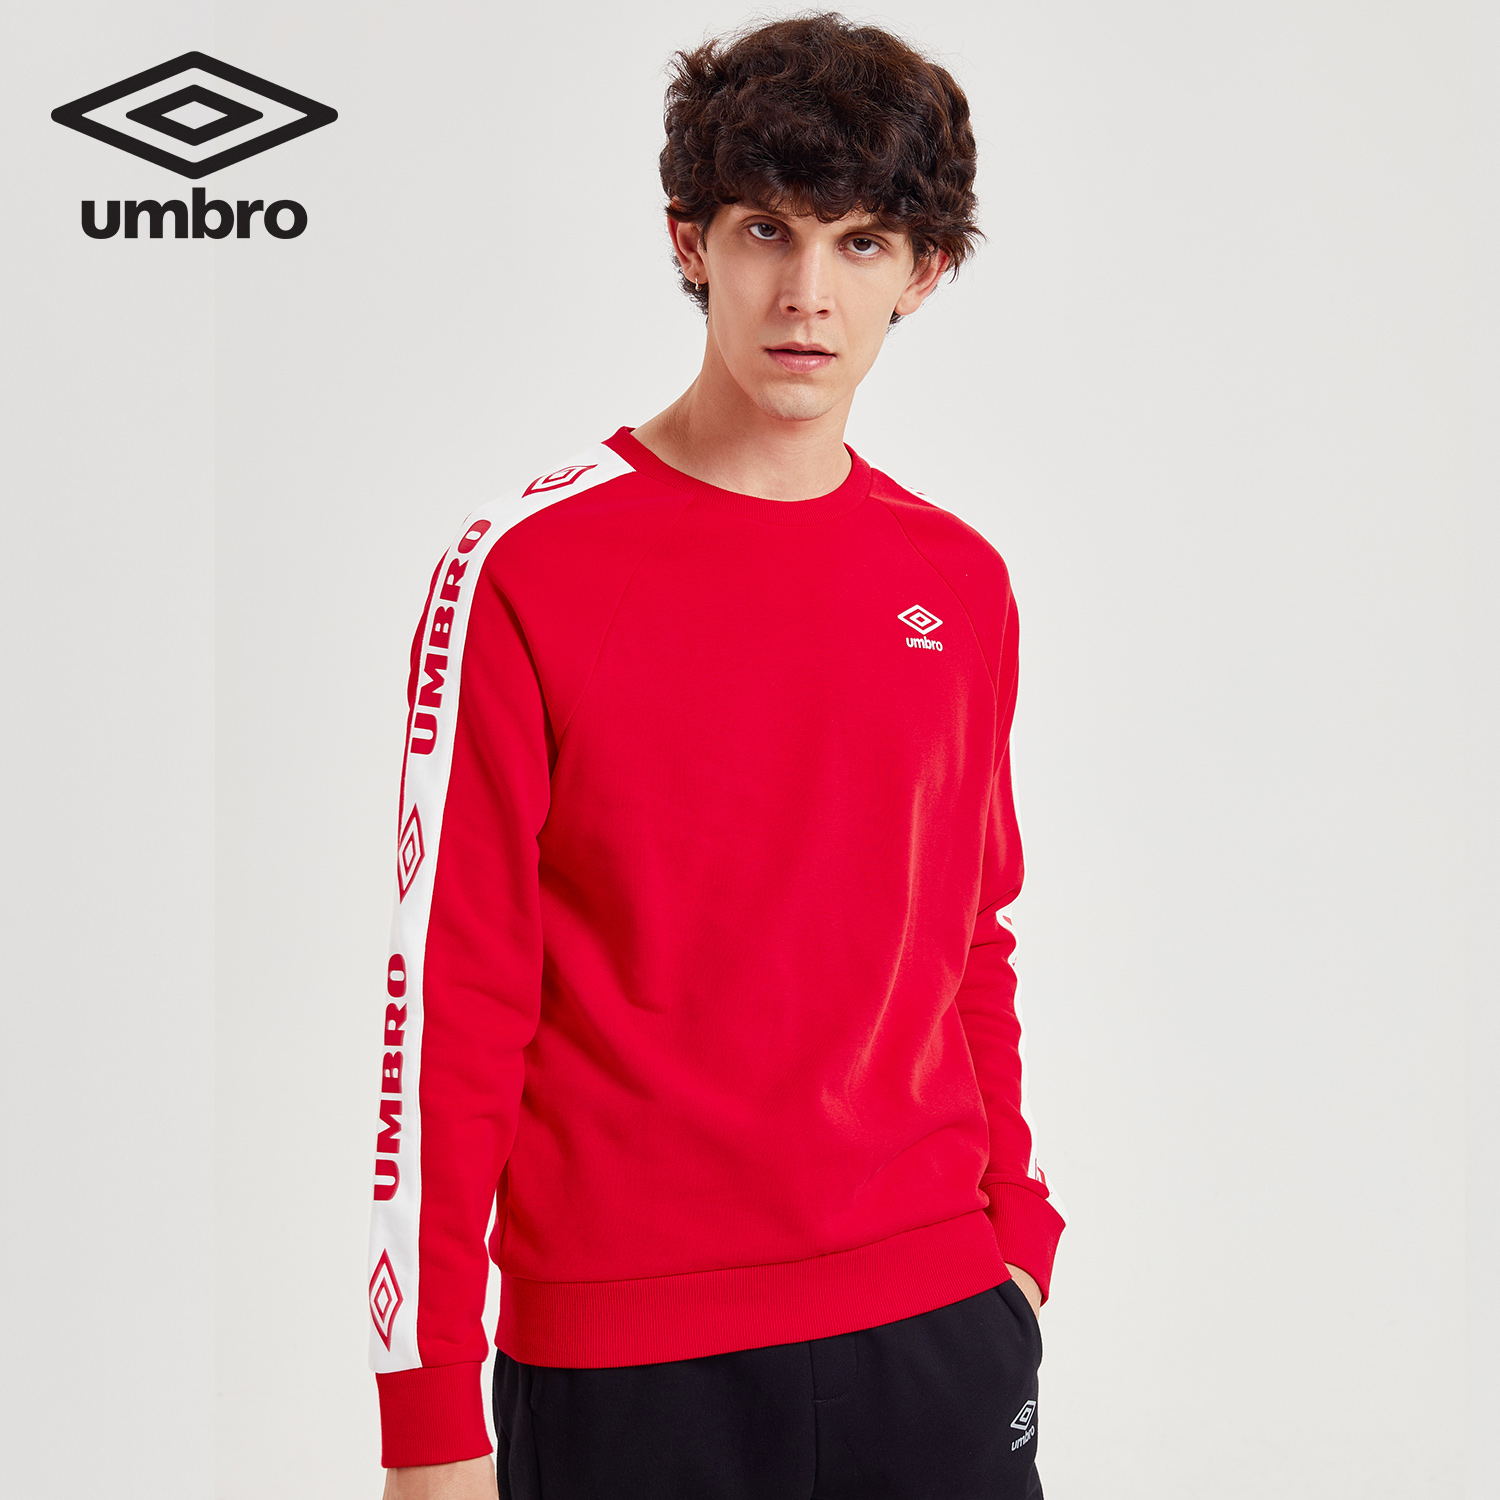 Umbro 2018 Autumn New Men Round necked Fashion Sports sweater A String of Brand Signs Jacket